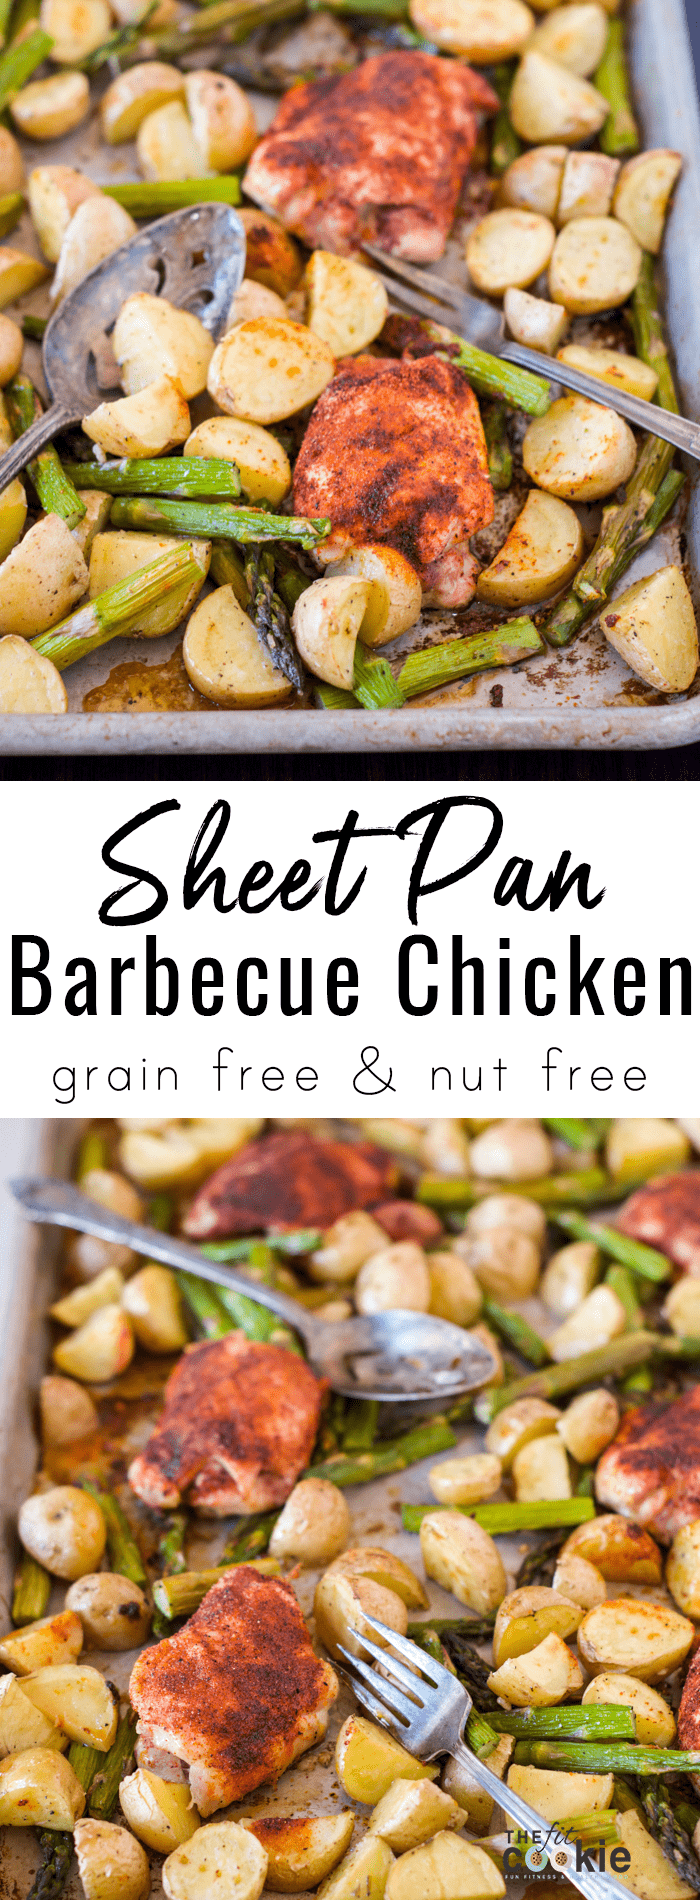 Looking for a healthy and easy weeknight dinner? Make this delicious Sheet Pan Barbecue Chicken with Potatoes and Asparagus for a complete meal ready in under 40 minutes - @TheFitCookie #grainfree #chicken #dairyfree